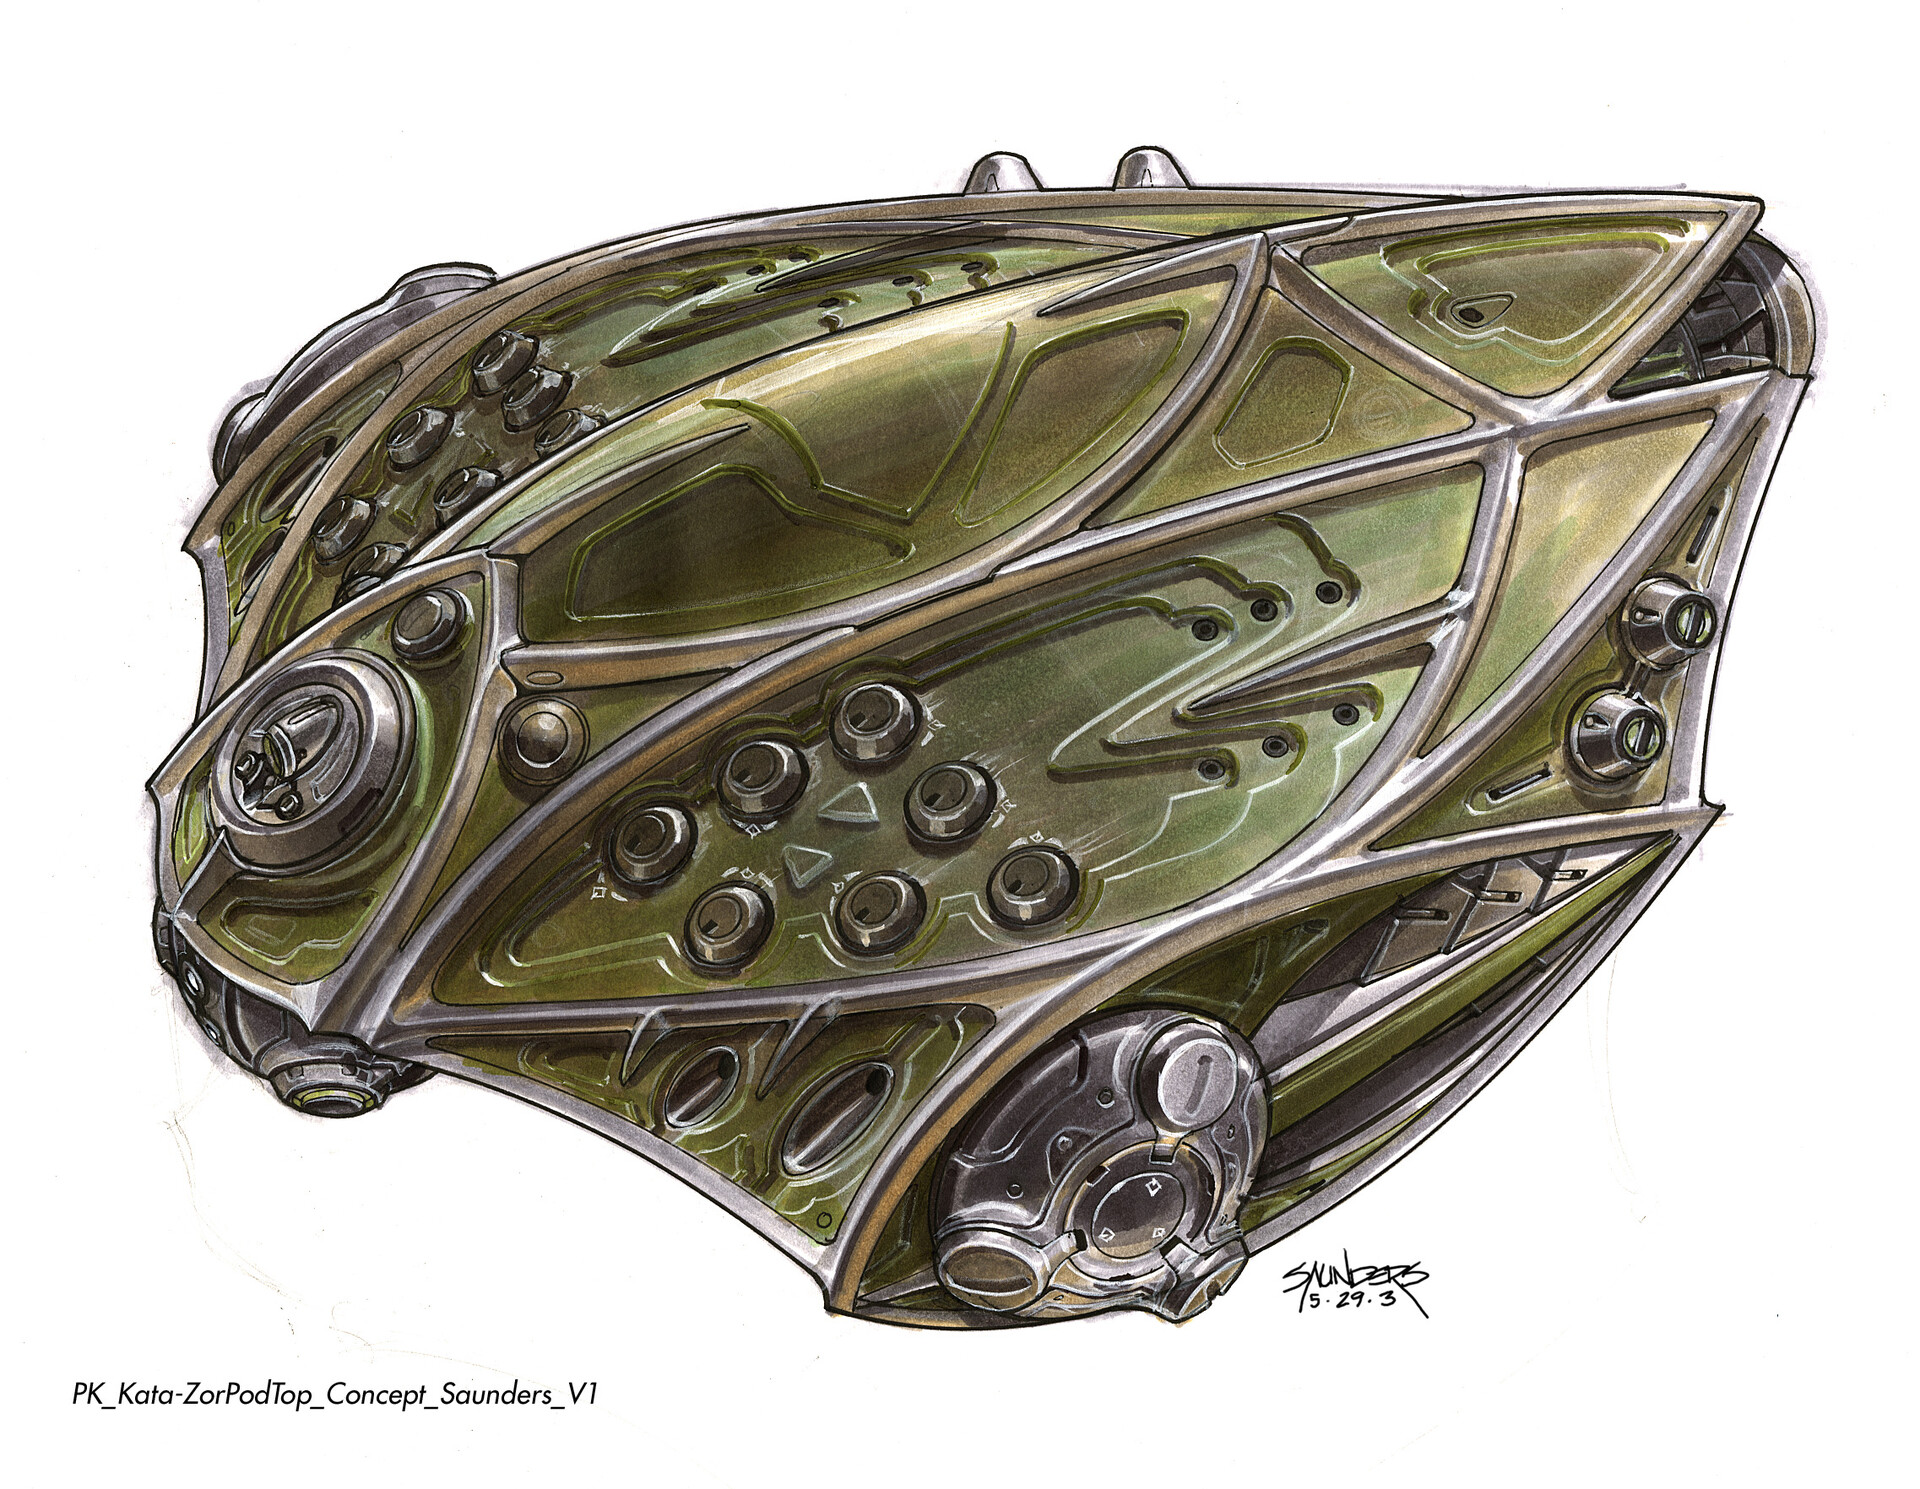 Final design of the Kata-Zor Pod. In contrast to Kal-El's more tear-drop shaped pod, these needed to look wicked and deadly. Fellow designer Geoff Darrow had established an almost  medieval look to Kryptonian architecture, so I took some cues from that.